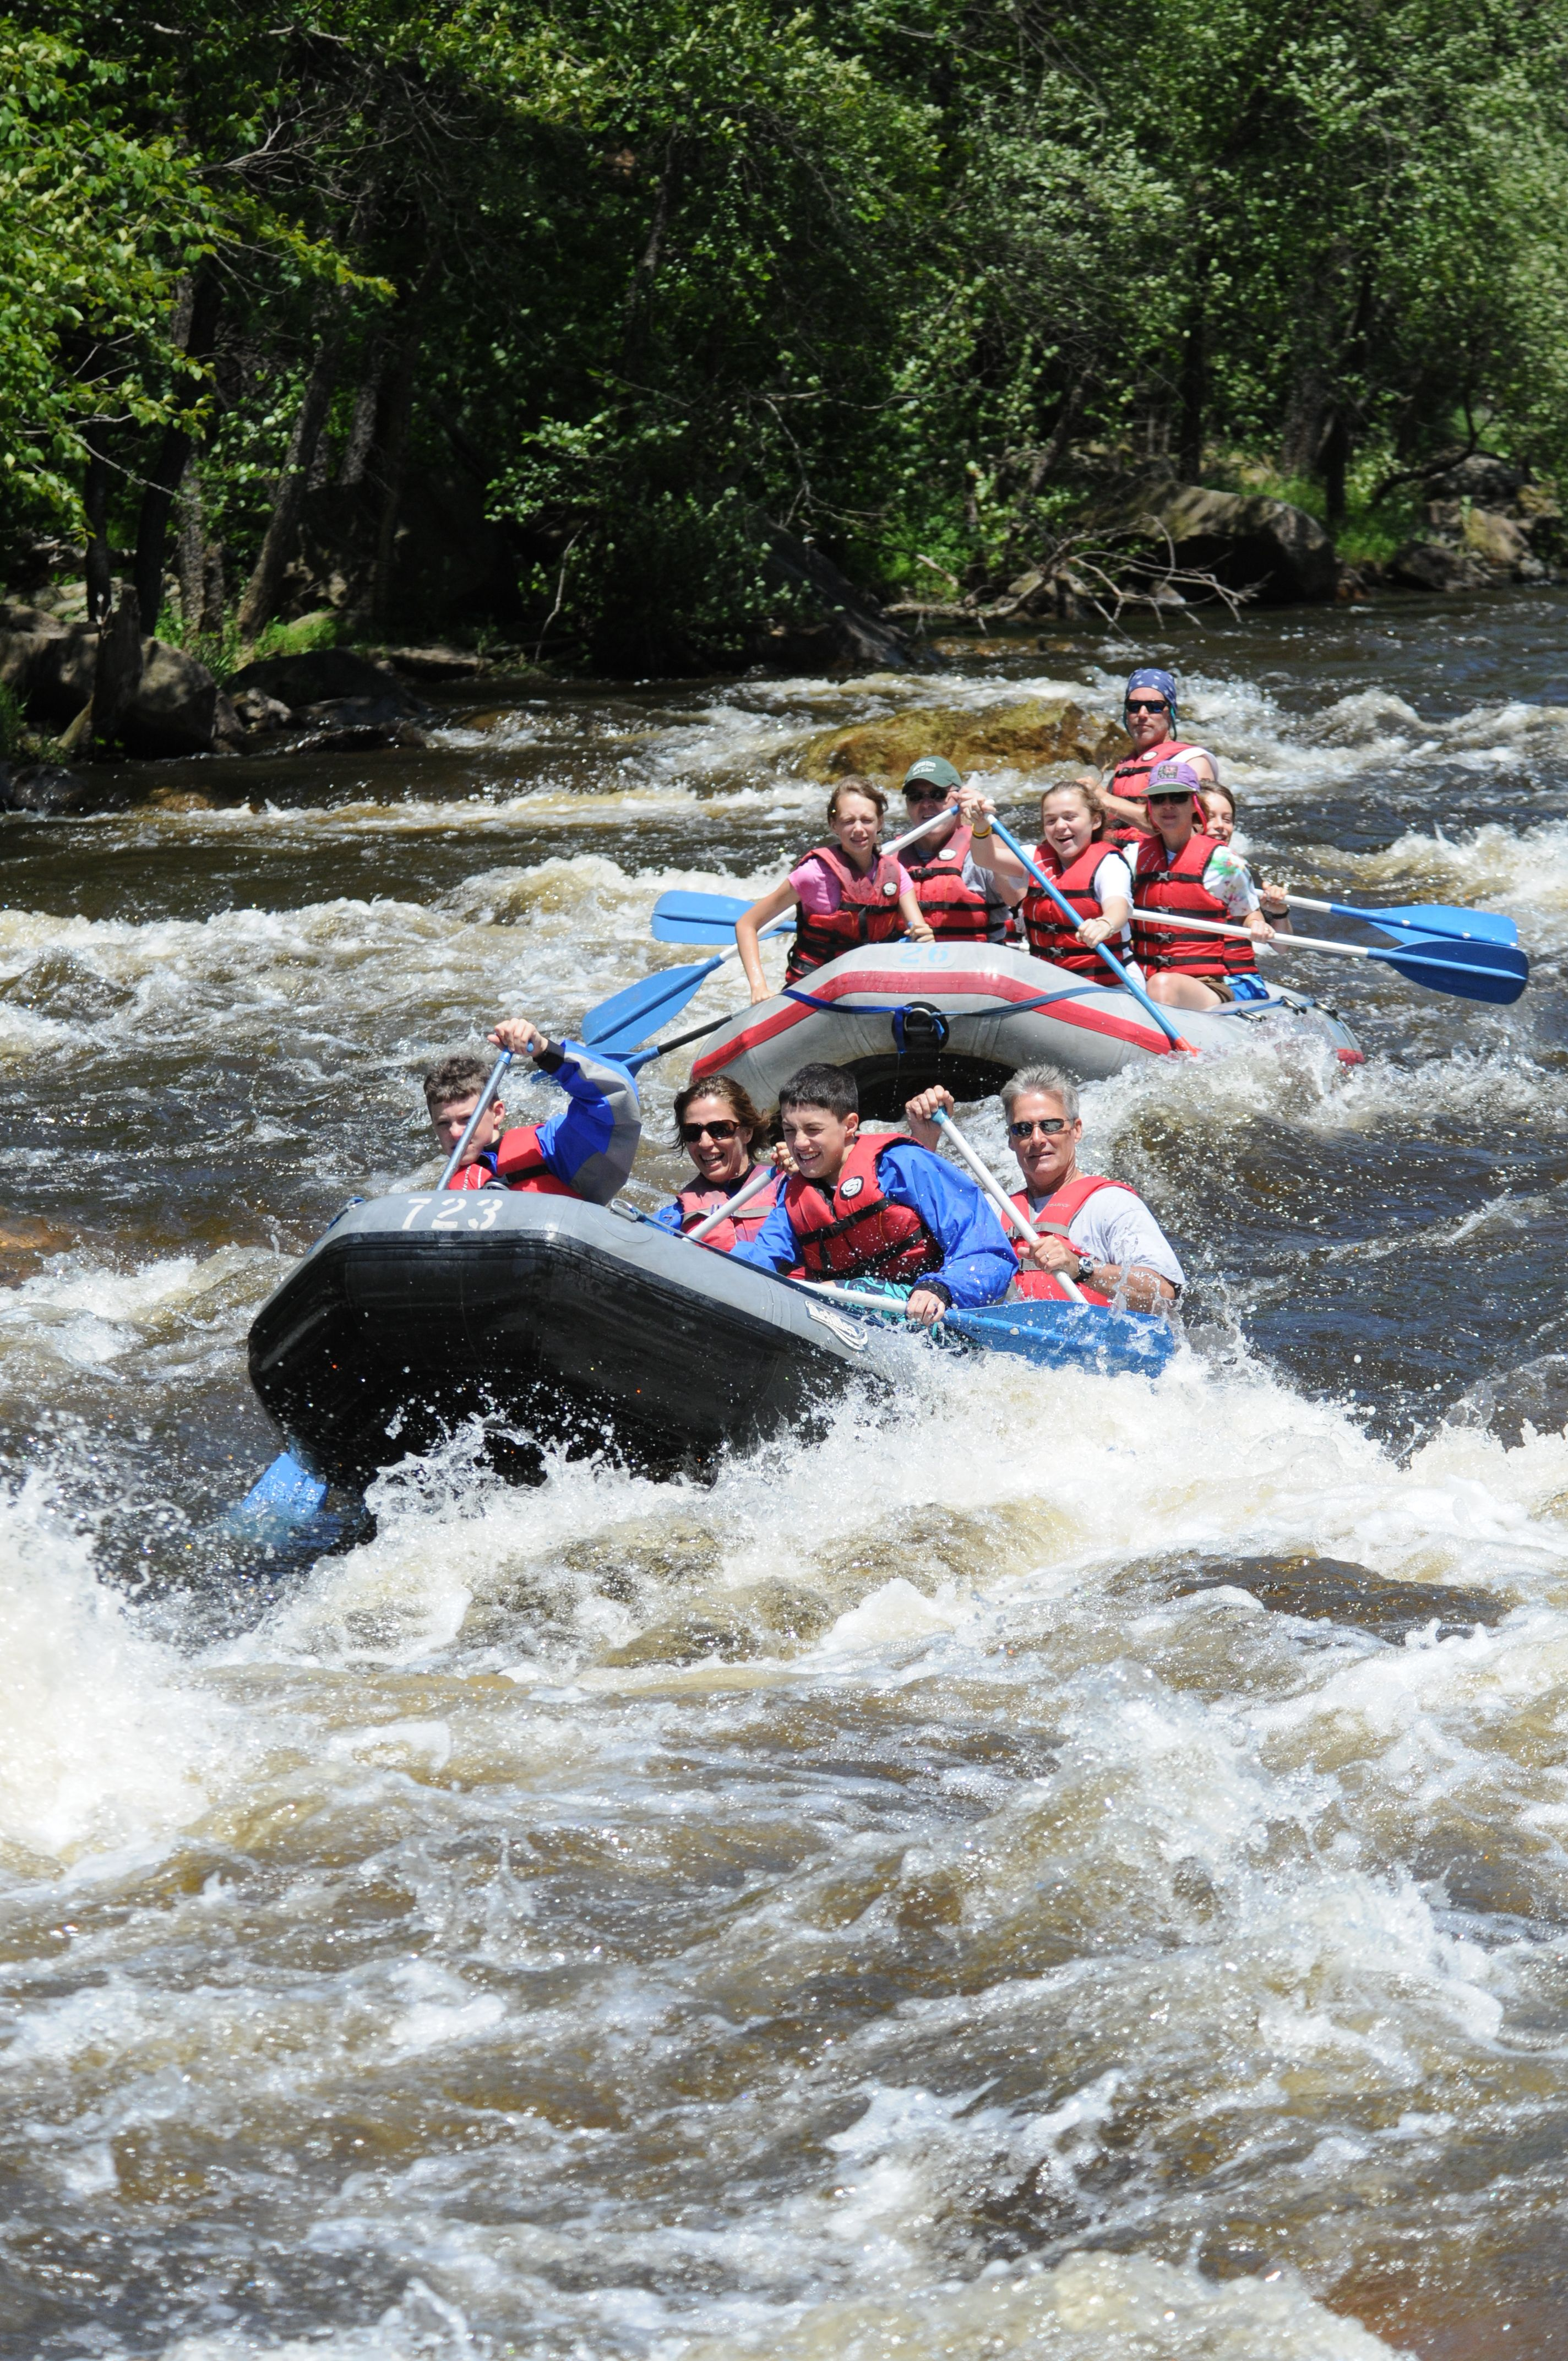 Get your adrenaline pumping on a whitewater rafting trip